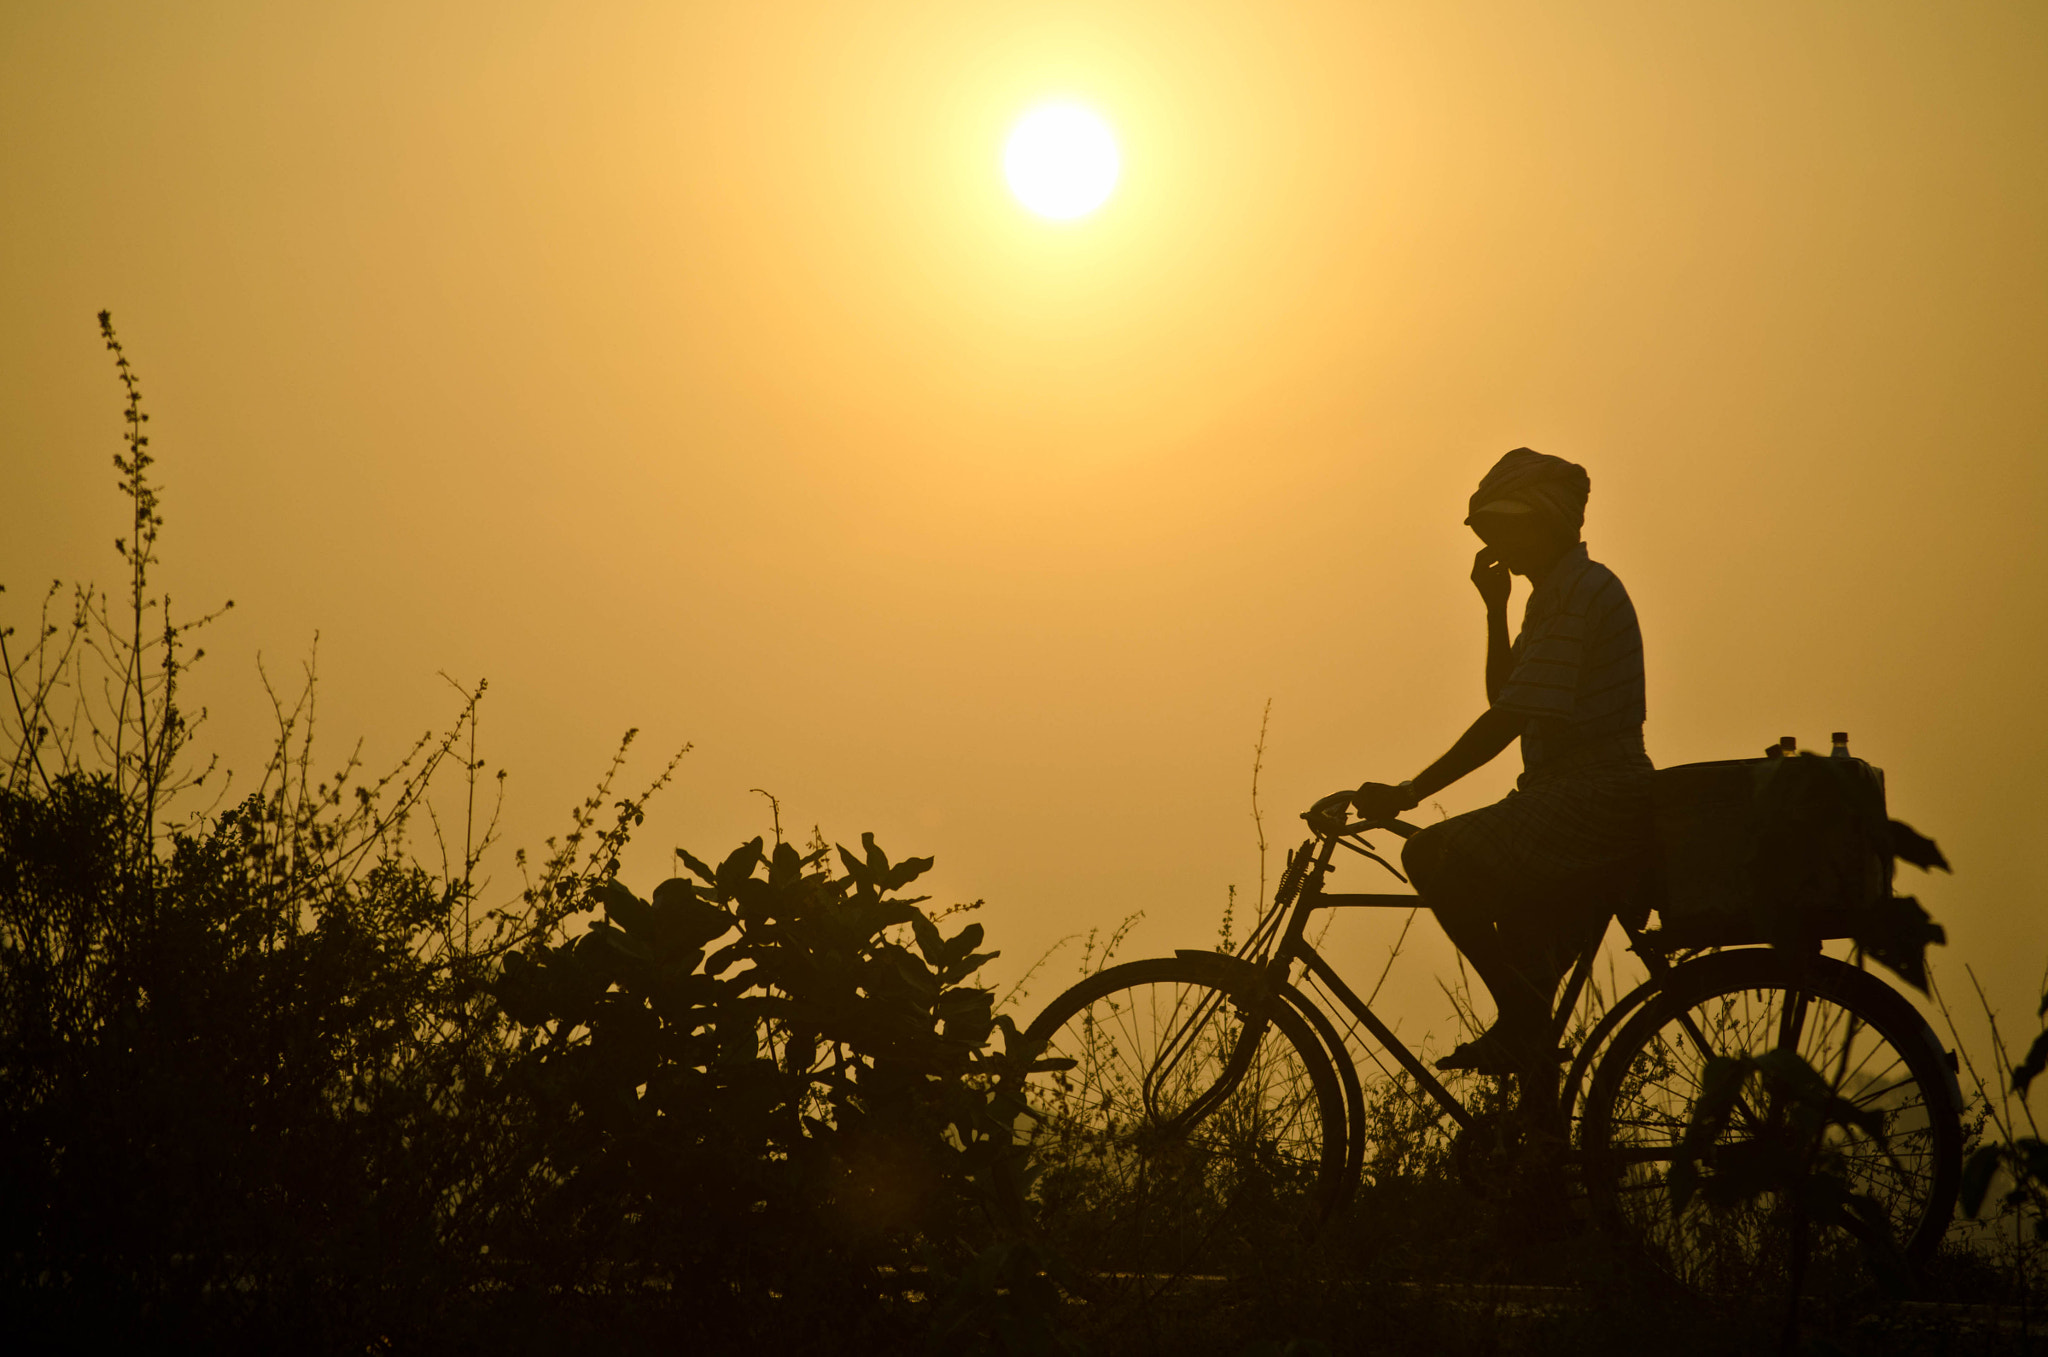 Photograph The Morning Ride by Madhusudanan Parthasarathy on 500px